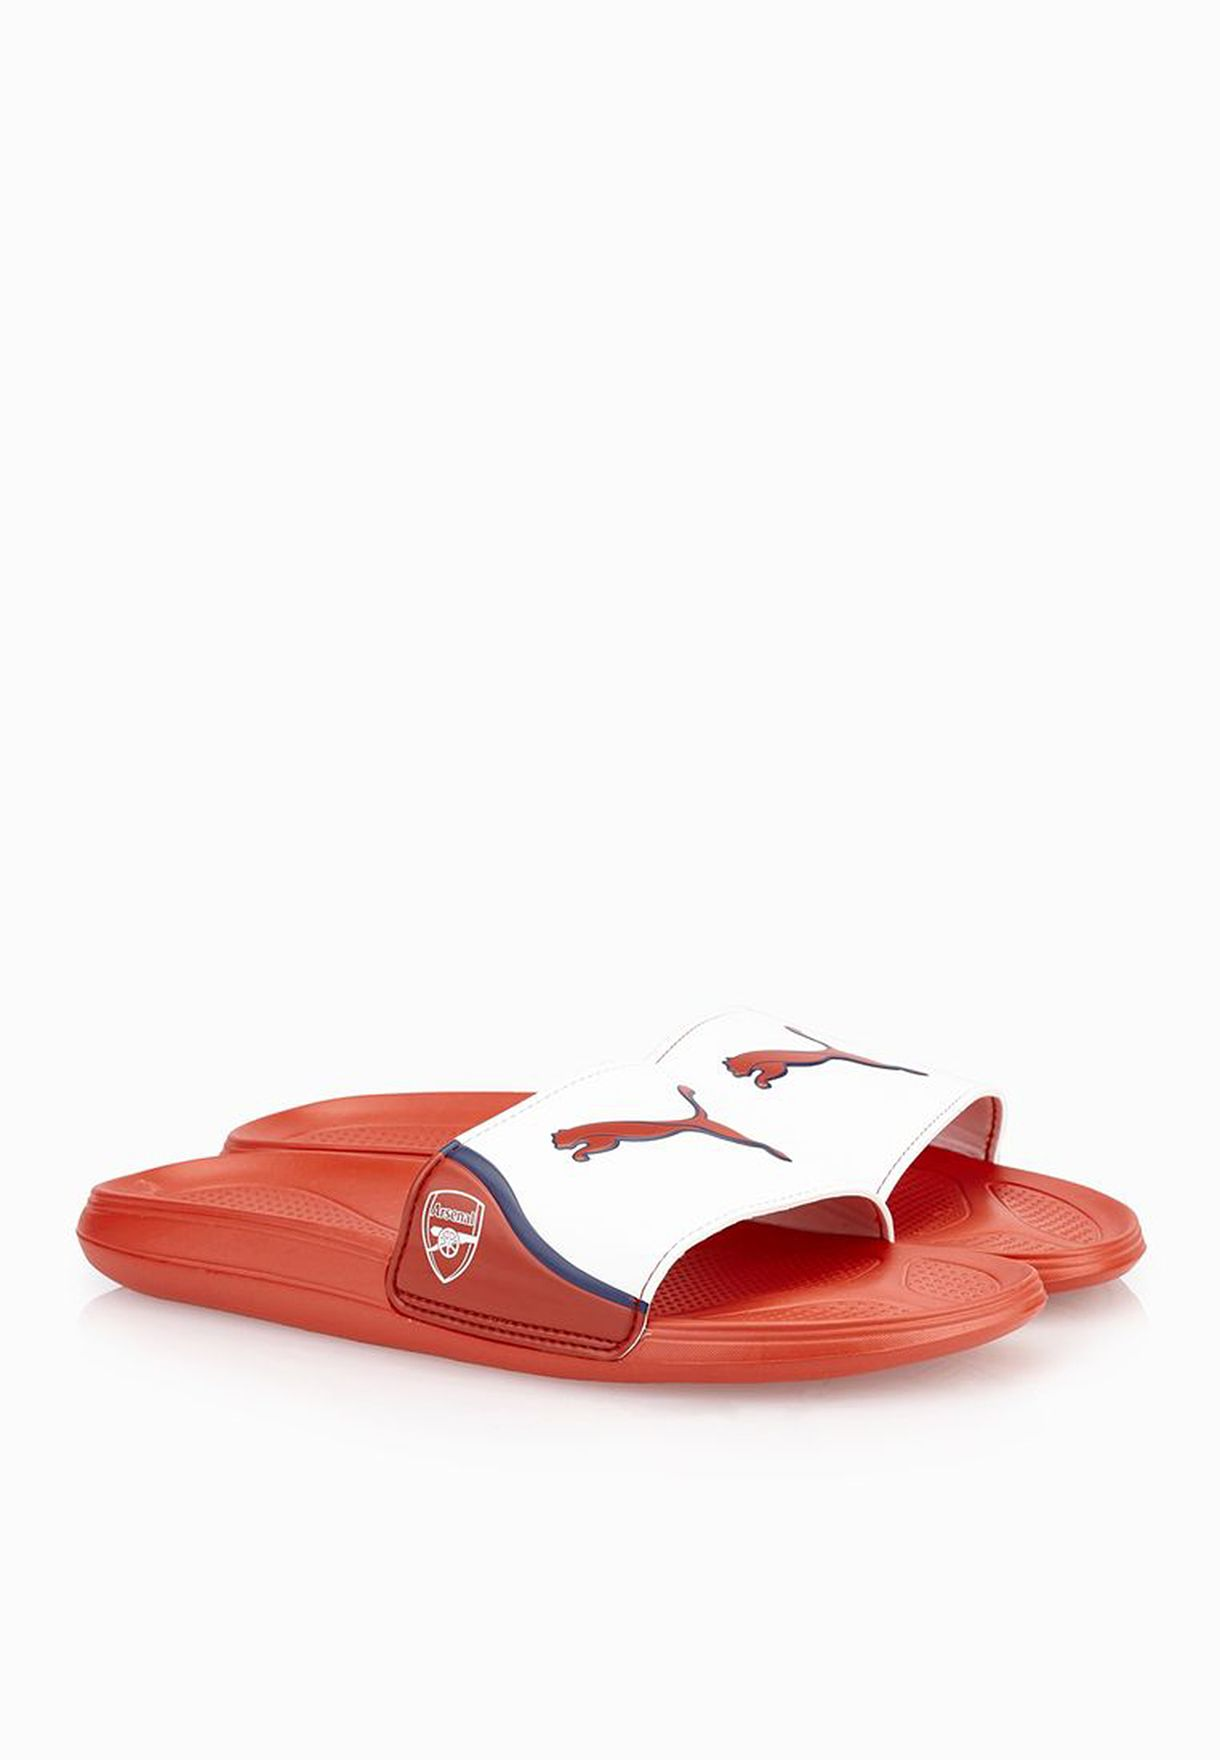 73d187e539e Shop PUMA red AFC Team Cat Sandal 10345501 for Men in Oman ...